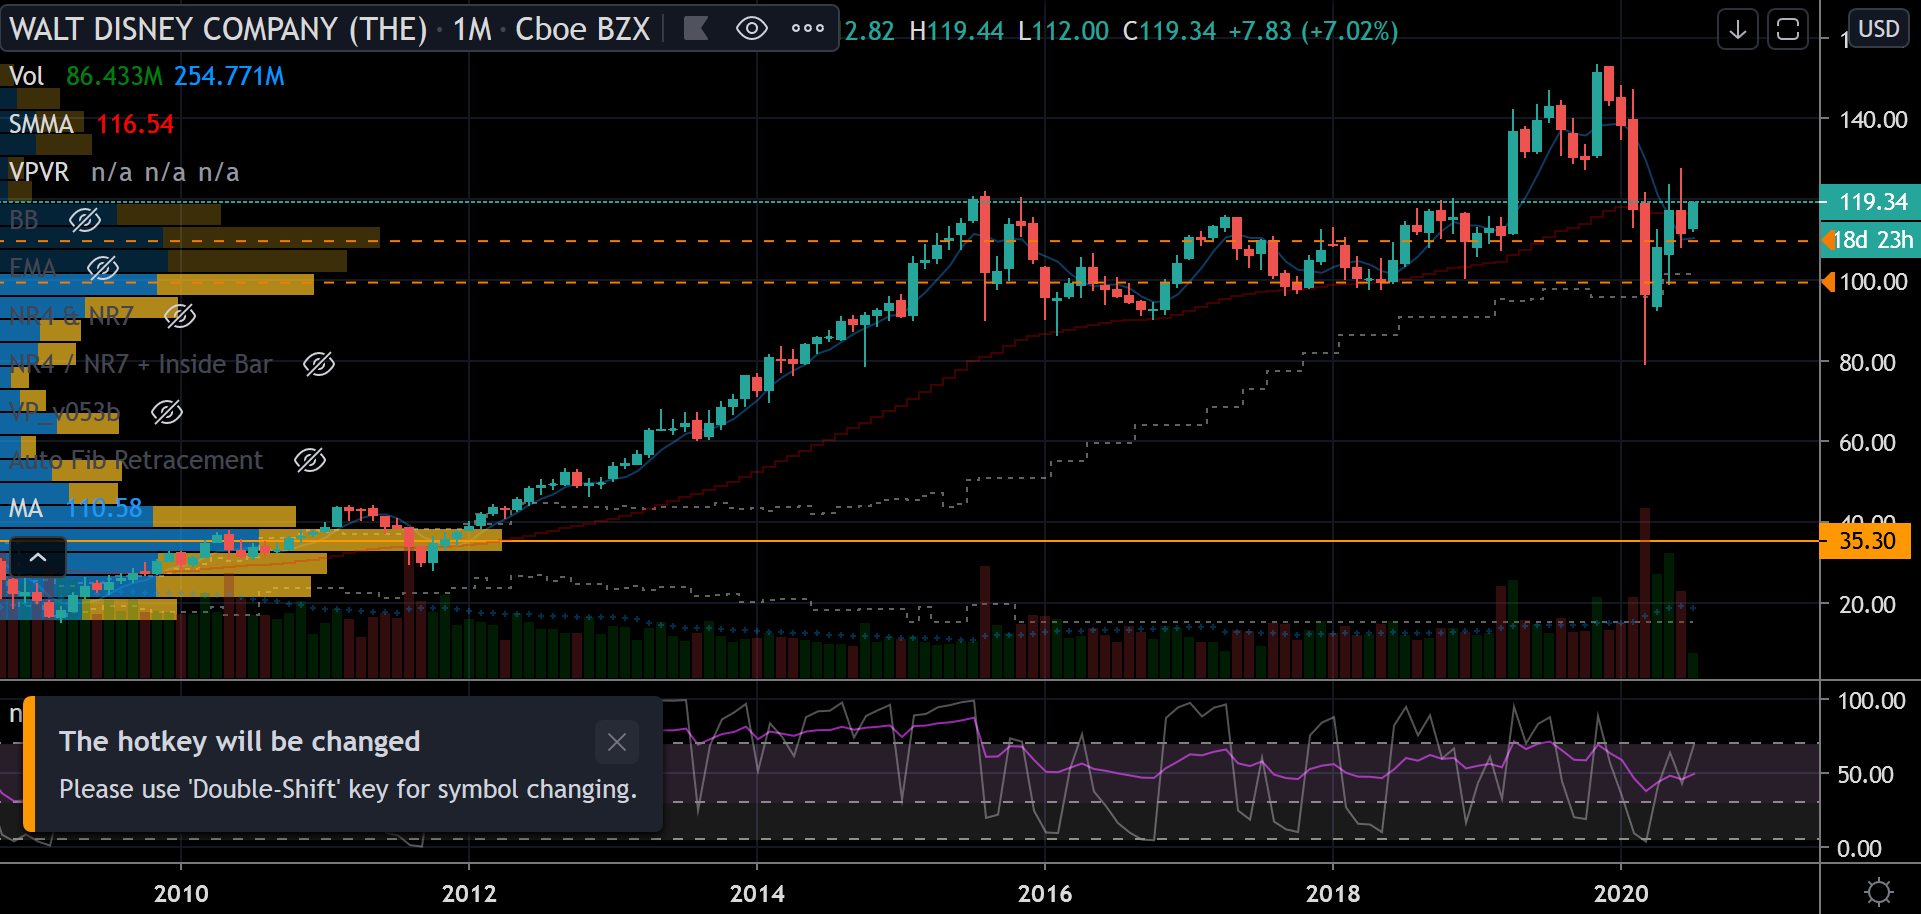 Disney (DIS) Stock Chart showing the change in price over the past 10-plus years.